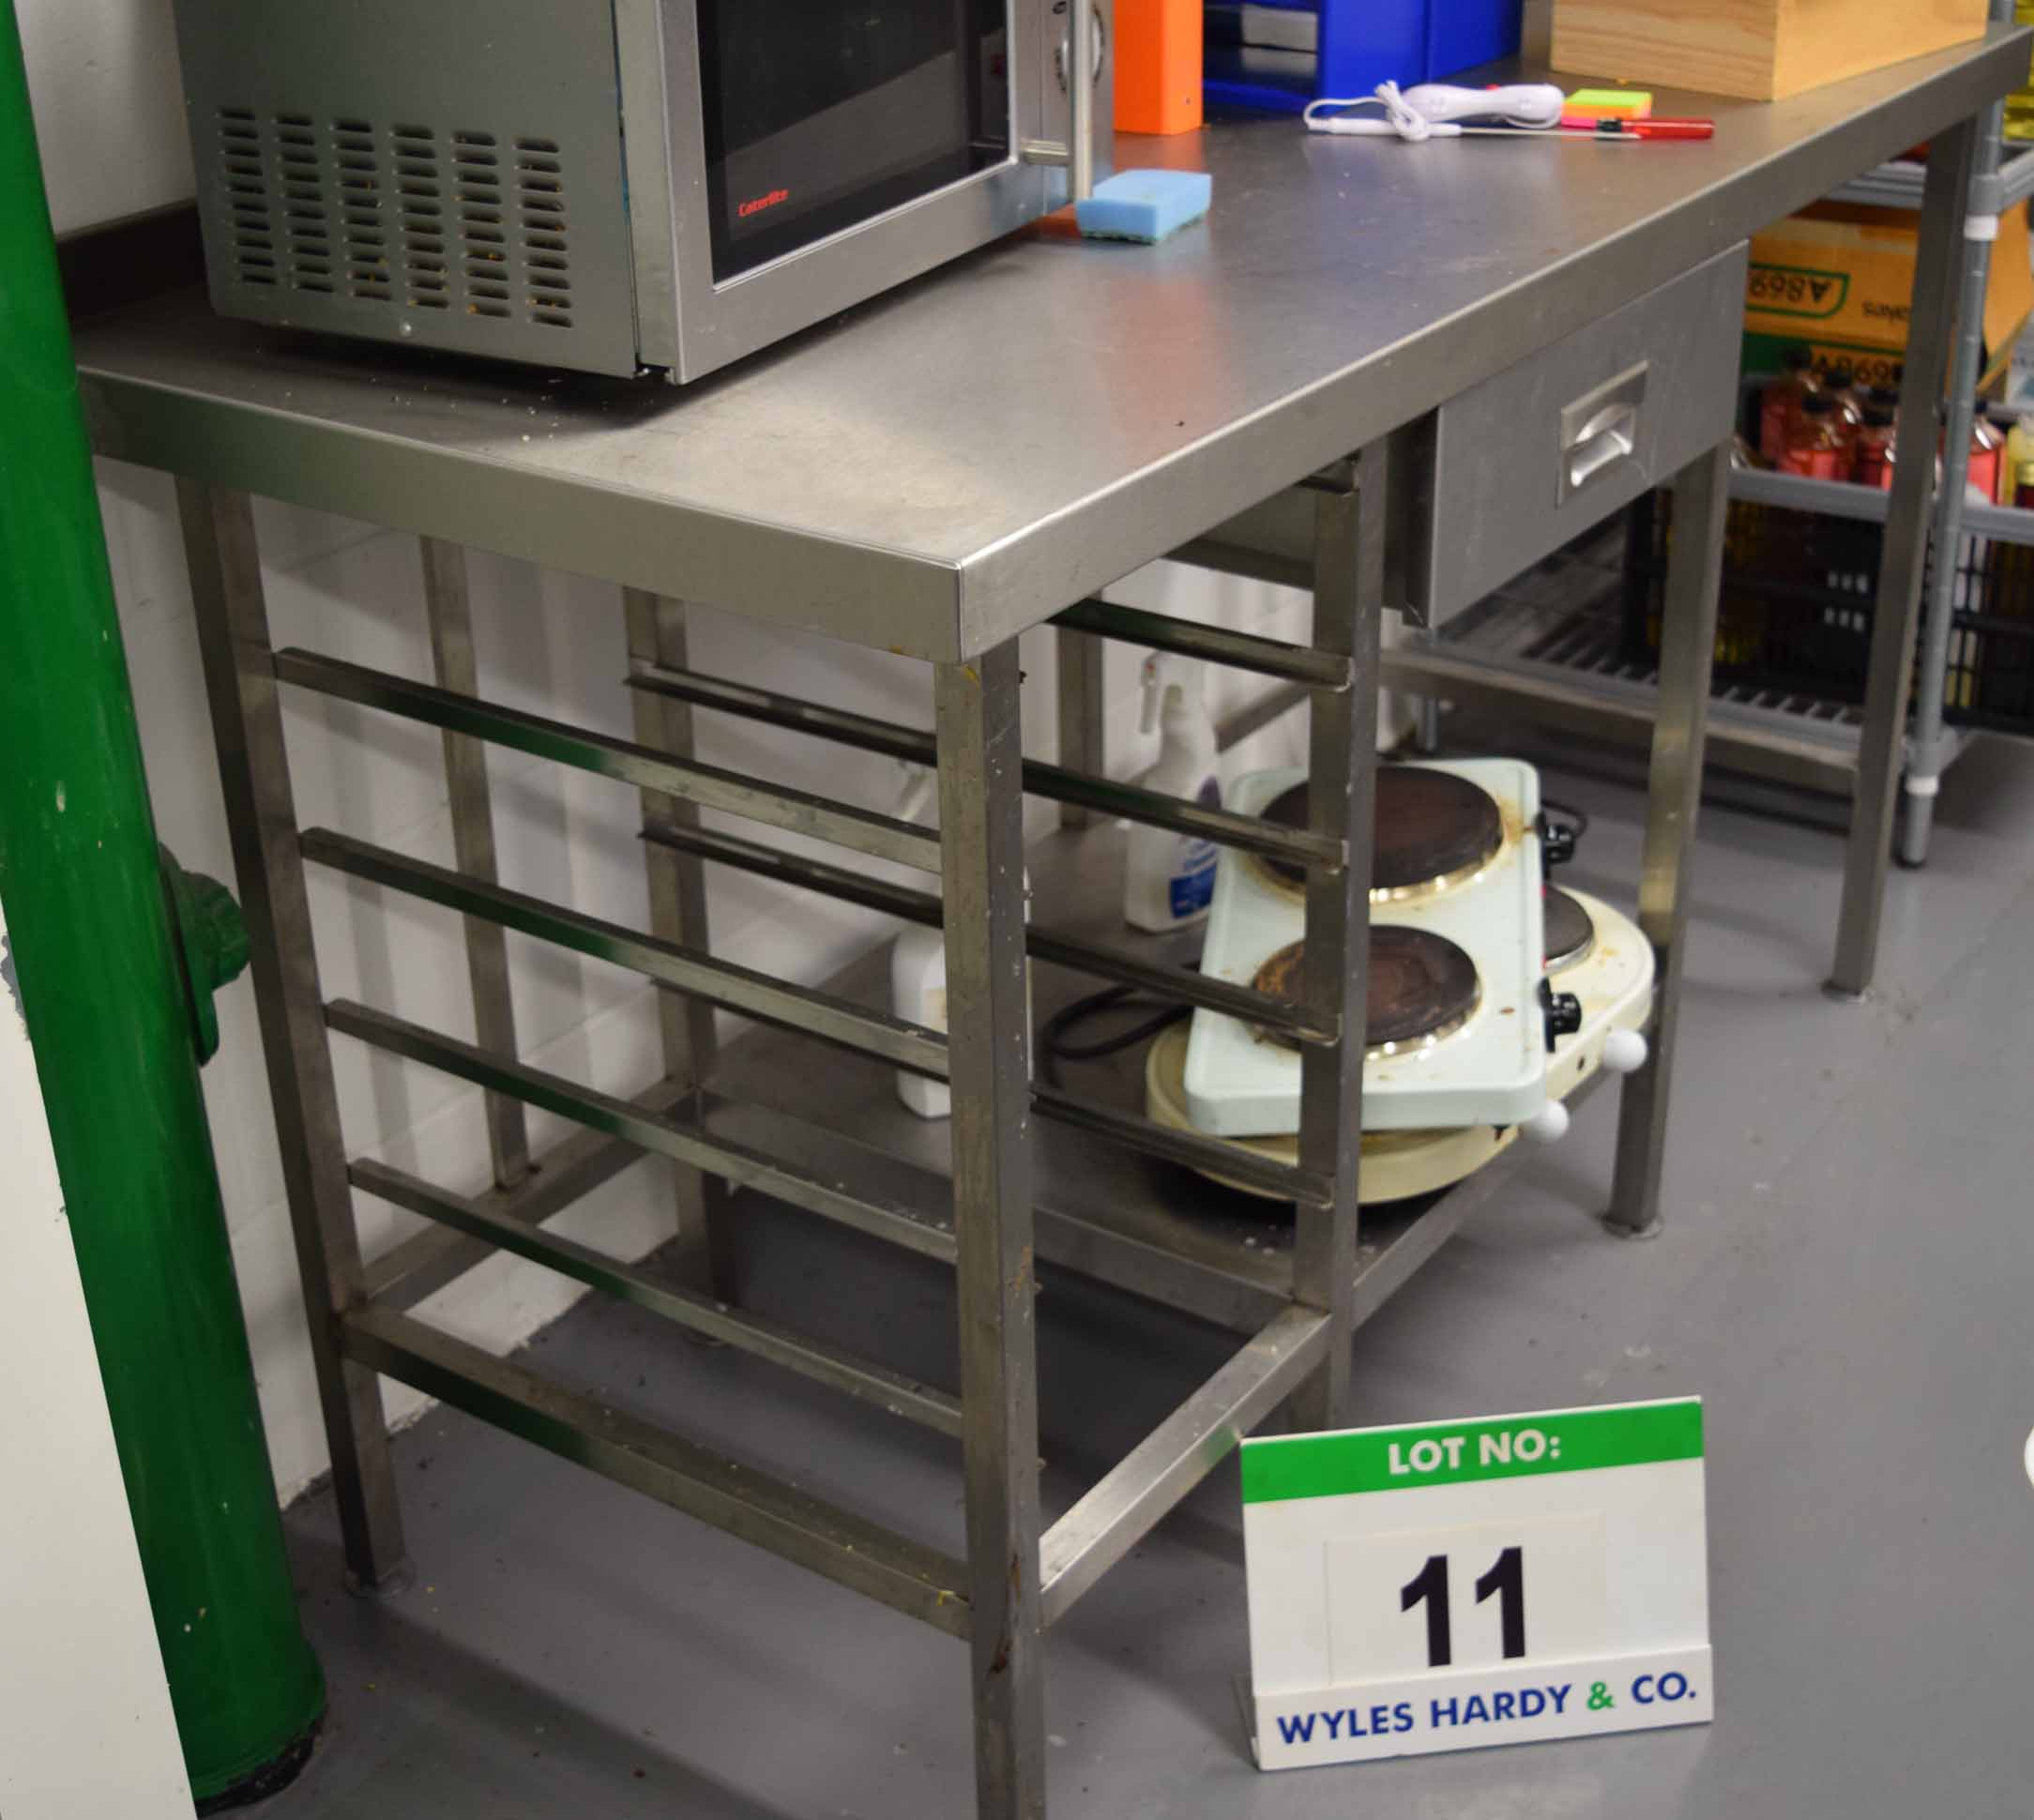 Lot 11 - A 1500mm x 680mm Stainless Steel Preparation Table with Rack Shelves to One Side and Single Drawer